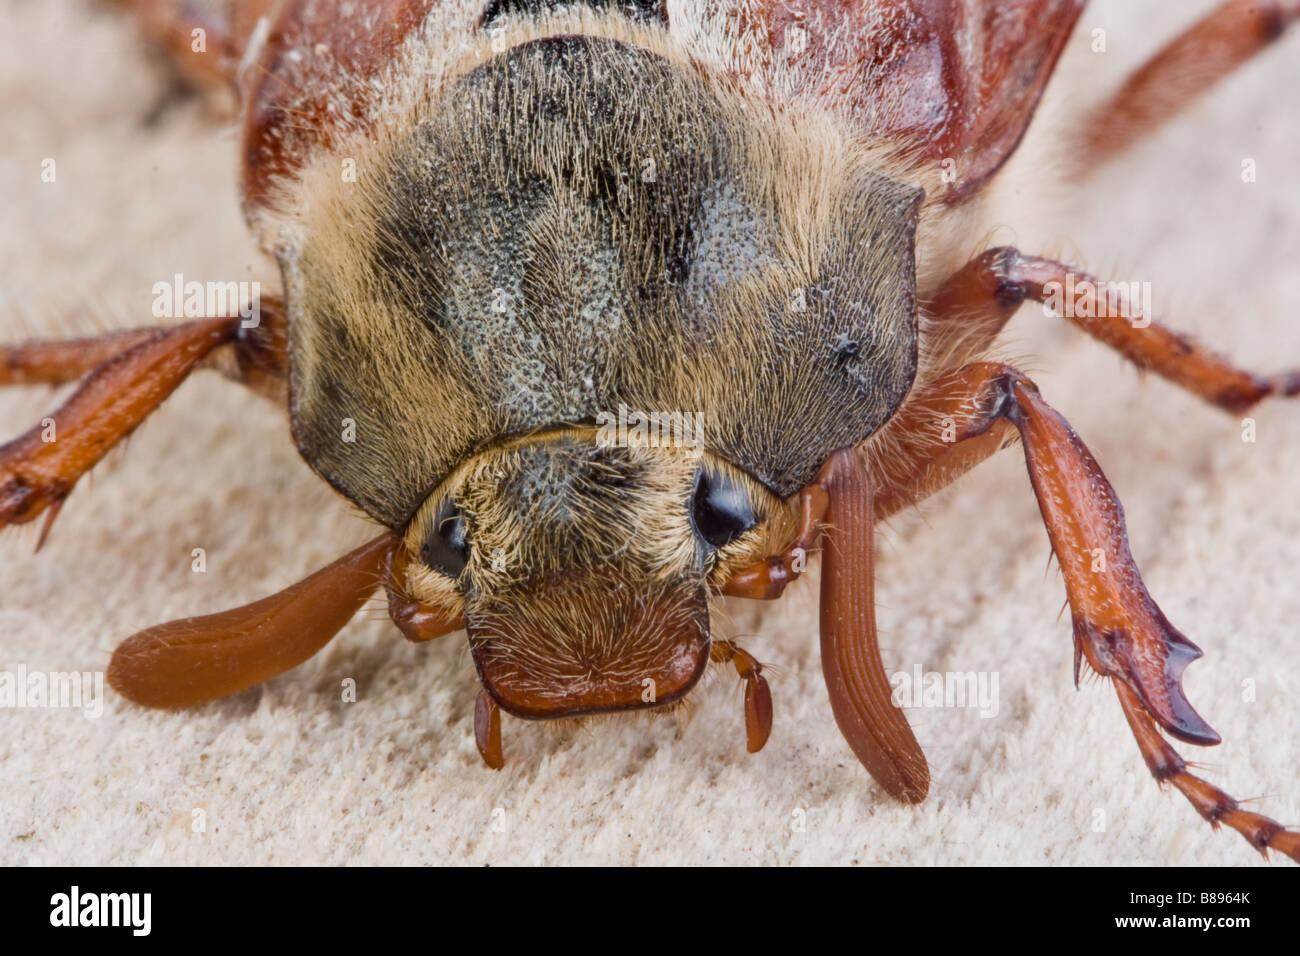 Extreme closeup of the face of a maybug beetle Stock Photo